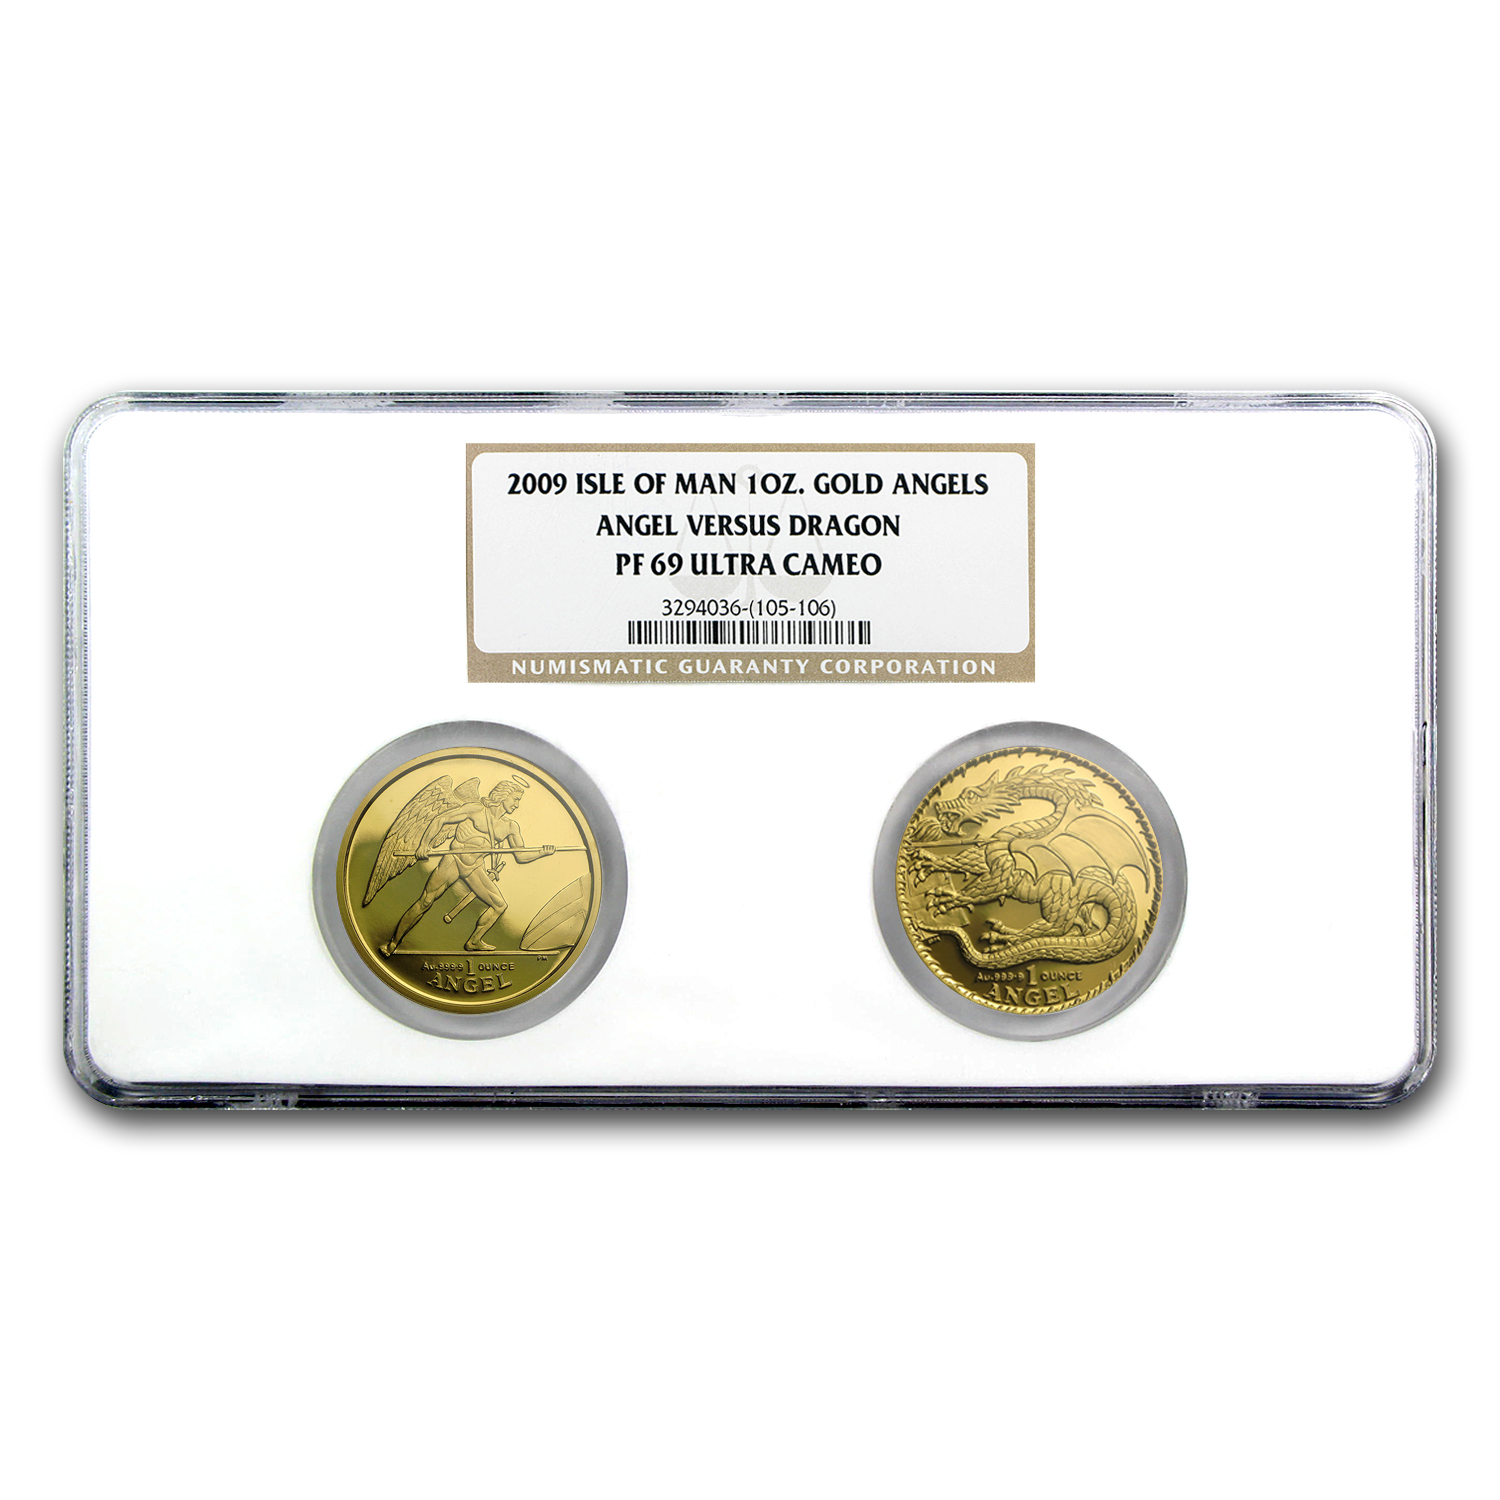 2009 Isle of Man 1 Oz Gold Angel vs Dragon Set - PF-69 UCAM NGC